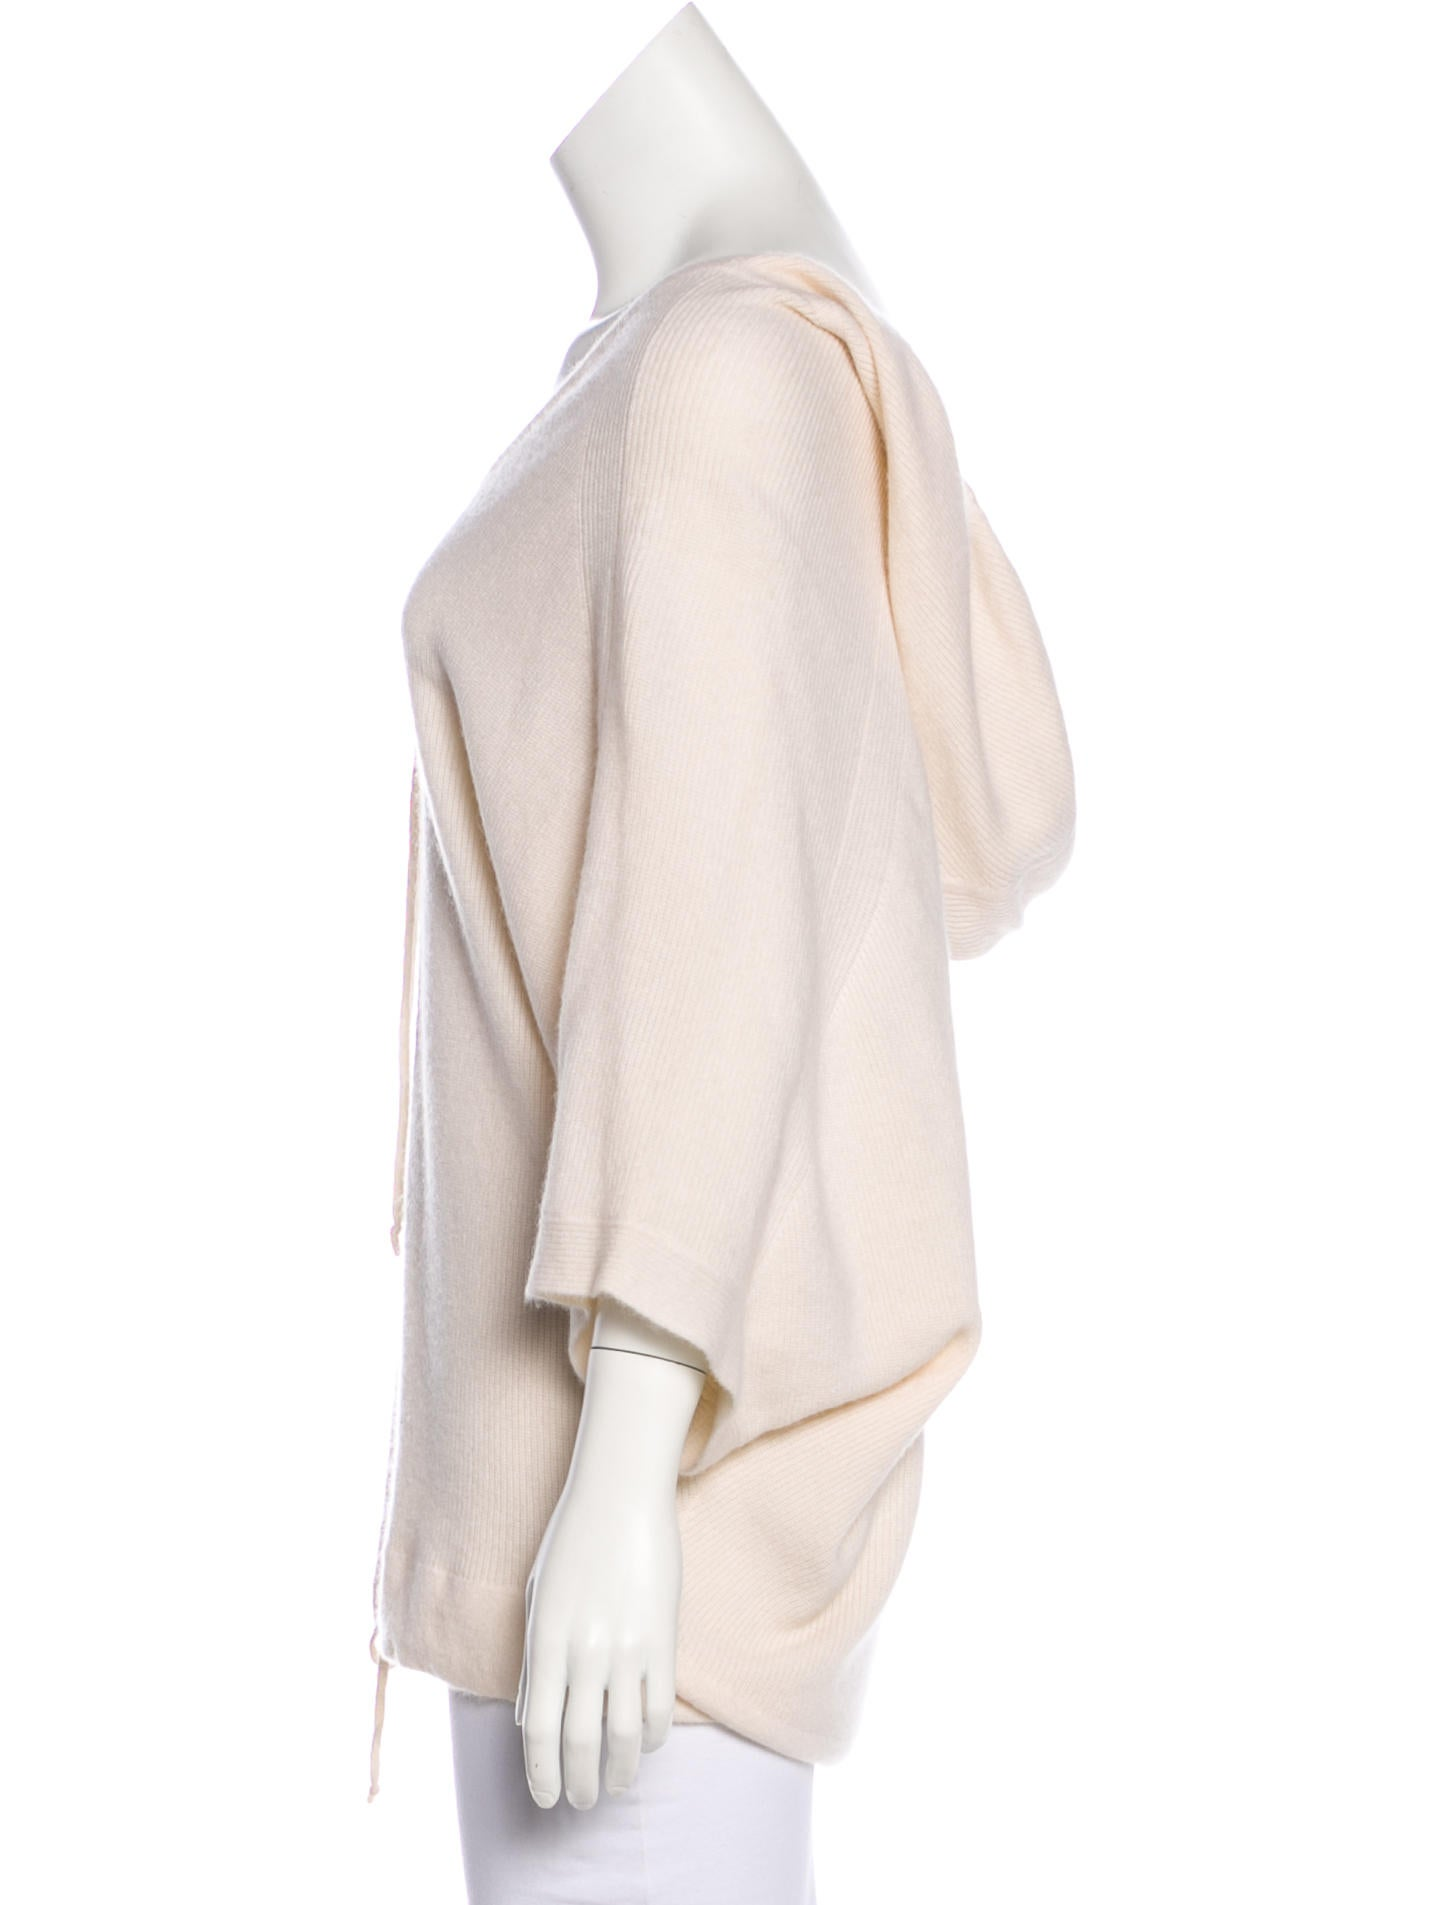 Gray Cashmere Hooded Sweater Pullover Top from sisk-profi.ga - Exclusive B2B Fashion Platform on sisk-profi.ga This supplier is located in .